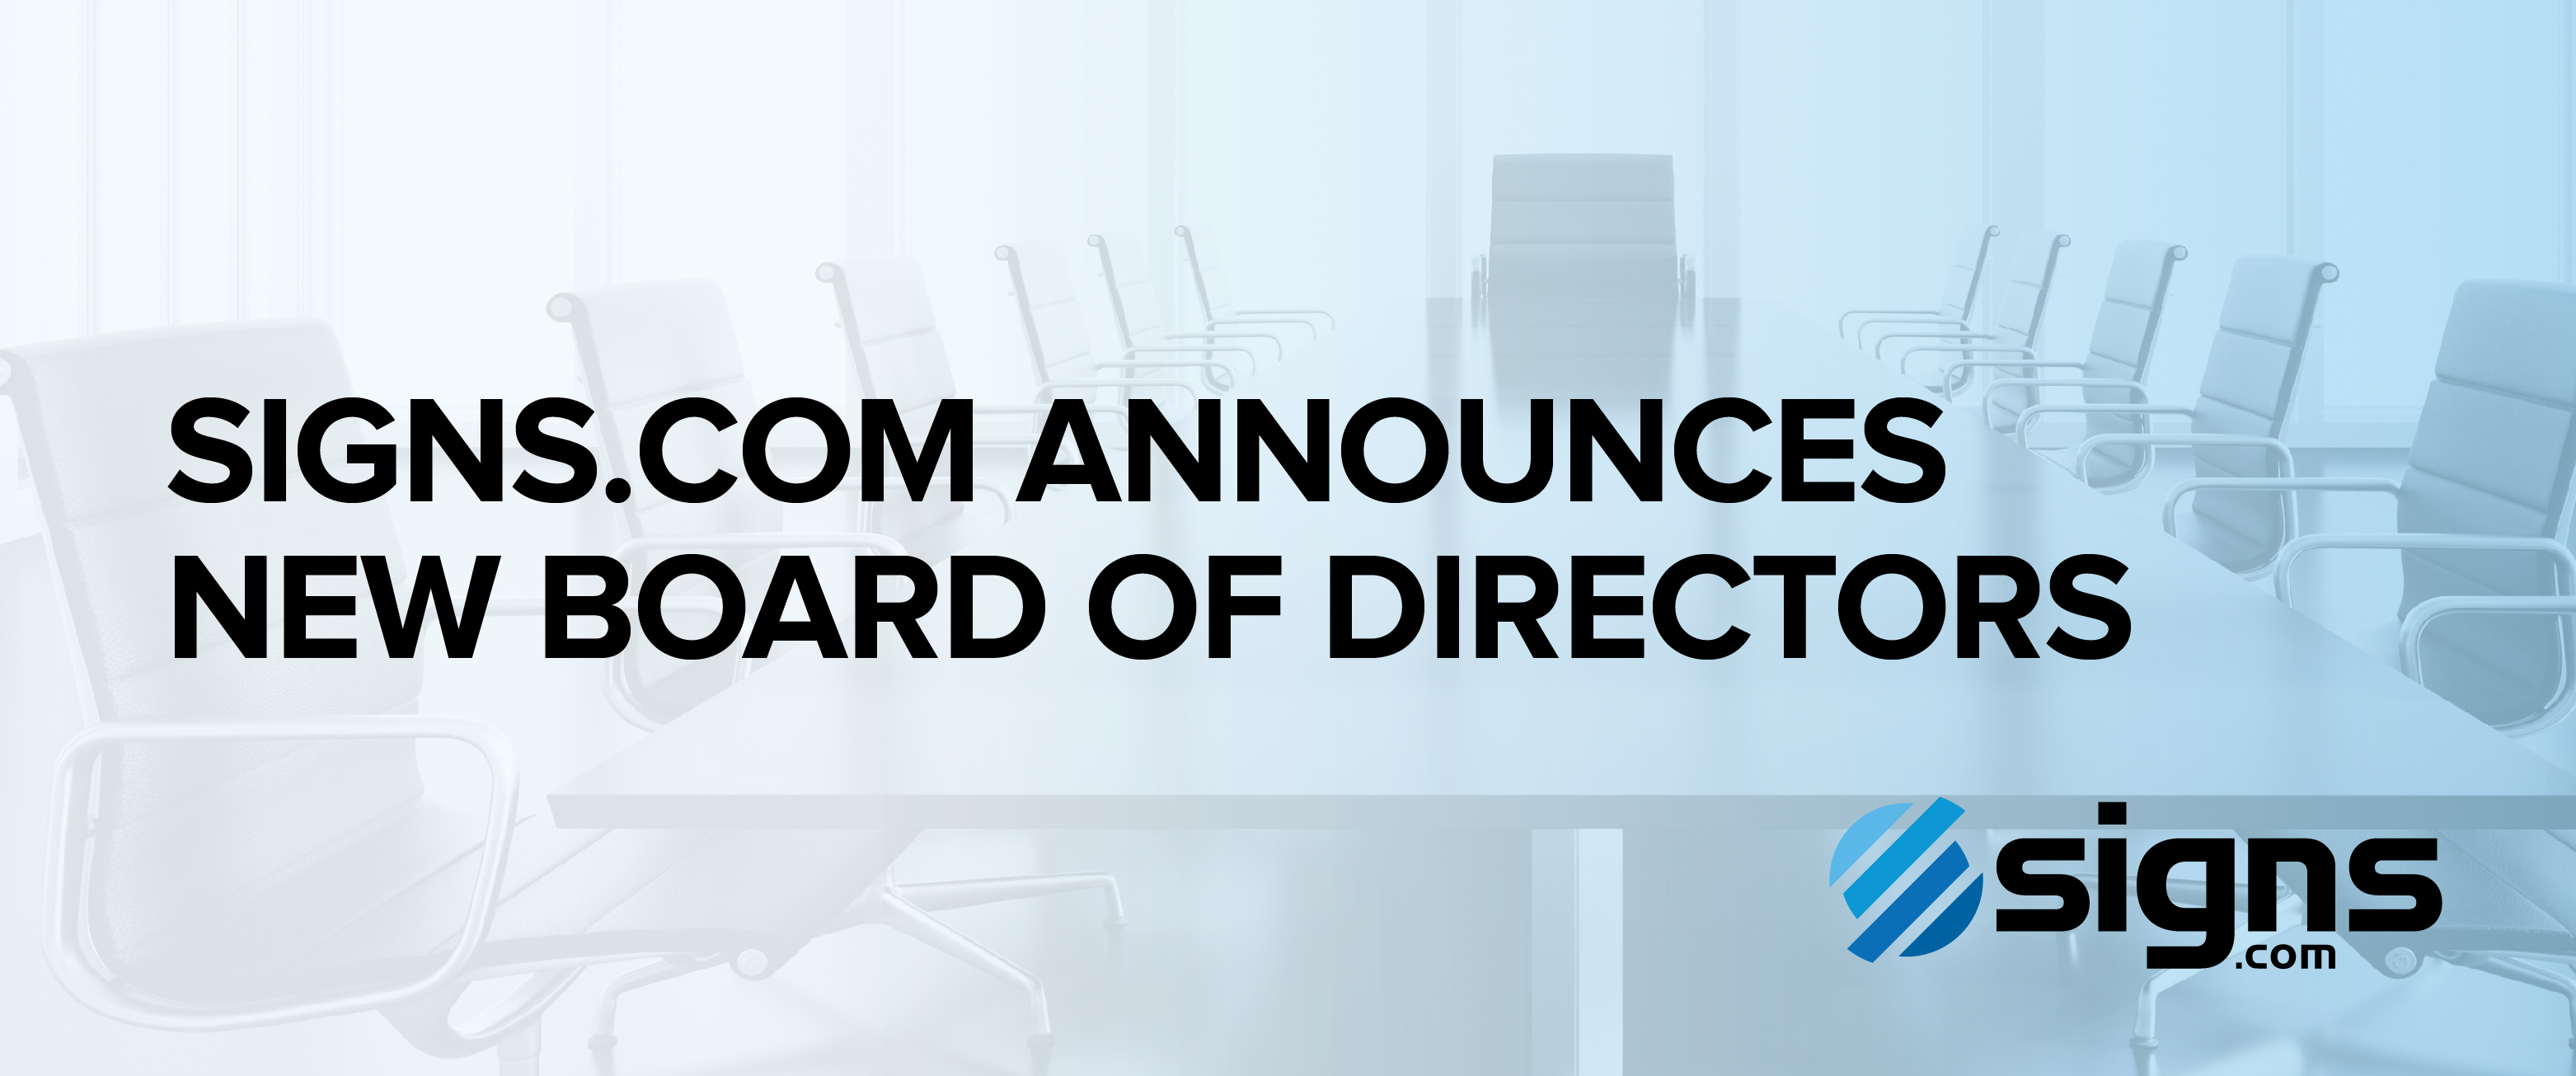 Text that says Signs.com announces new board of directors